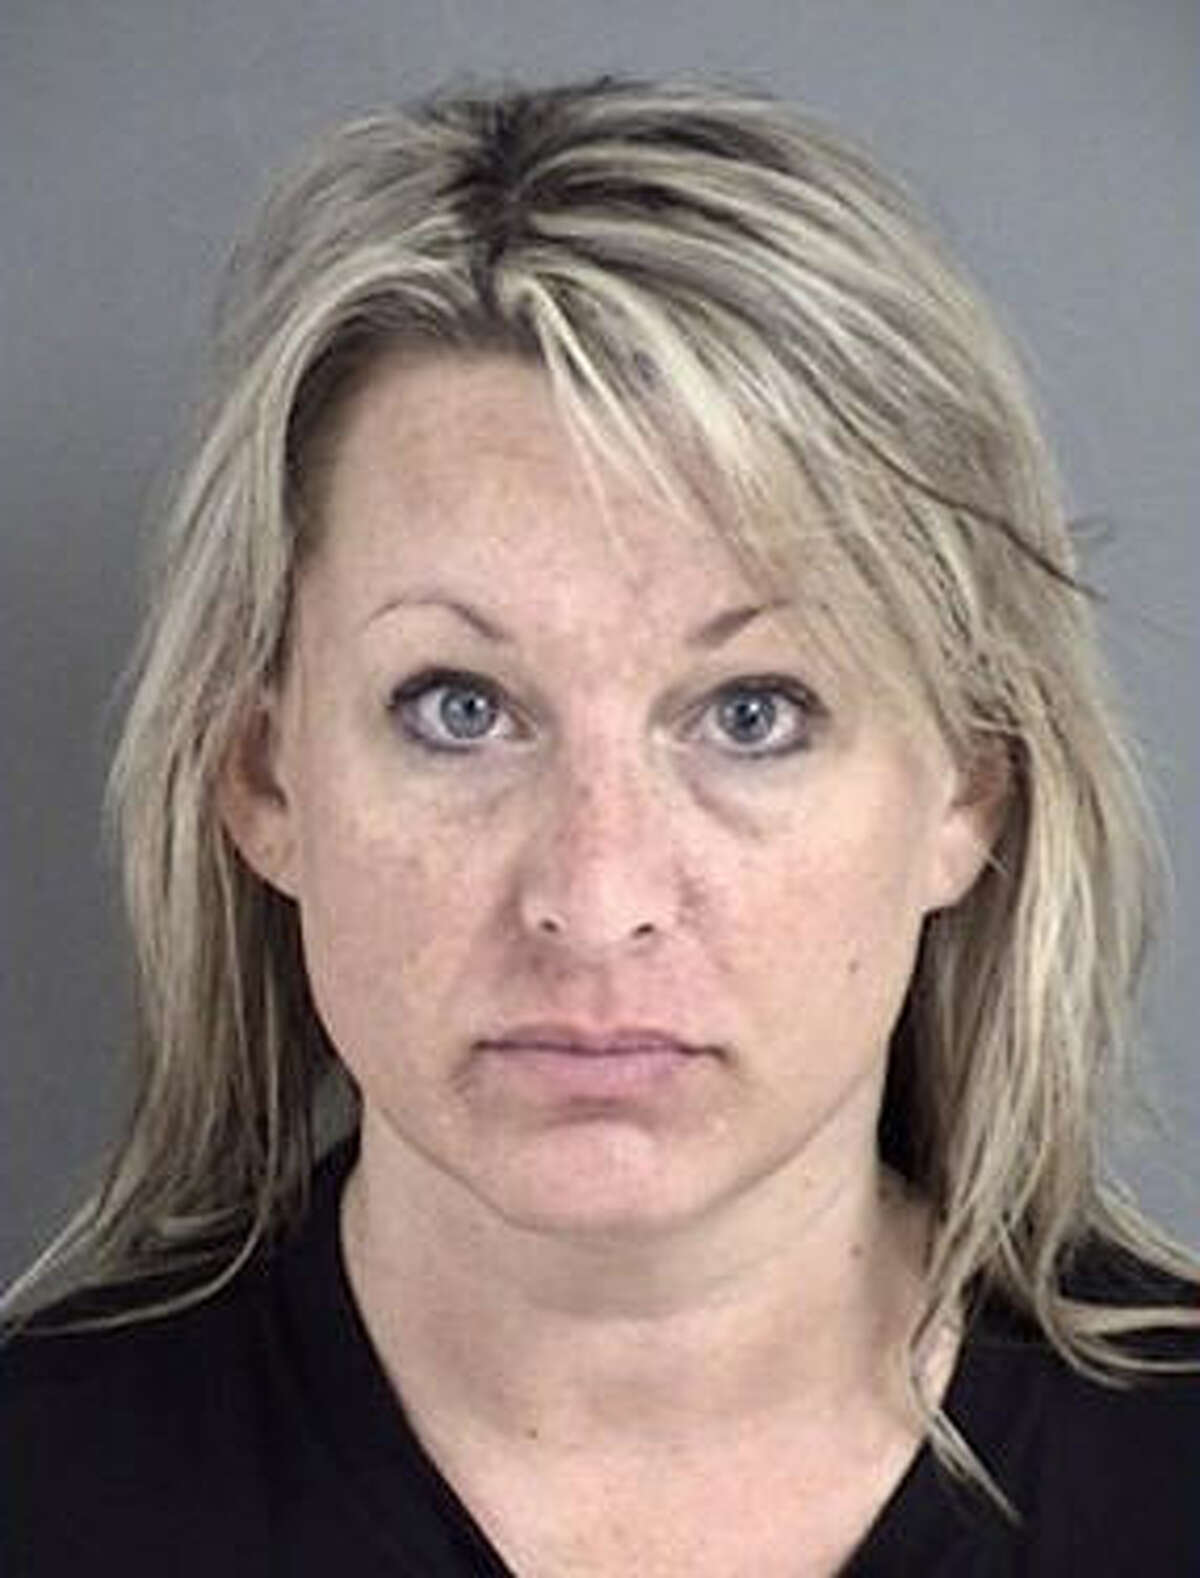 Former Texas kindergarten teacher Heather lee Robertson admits to having sex with four high school students. The 38-year-old is charged with four counts of improper relationship between educator and student.